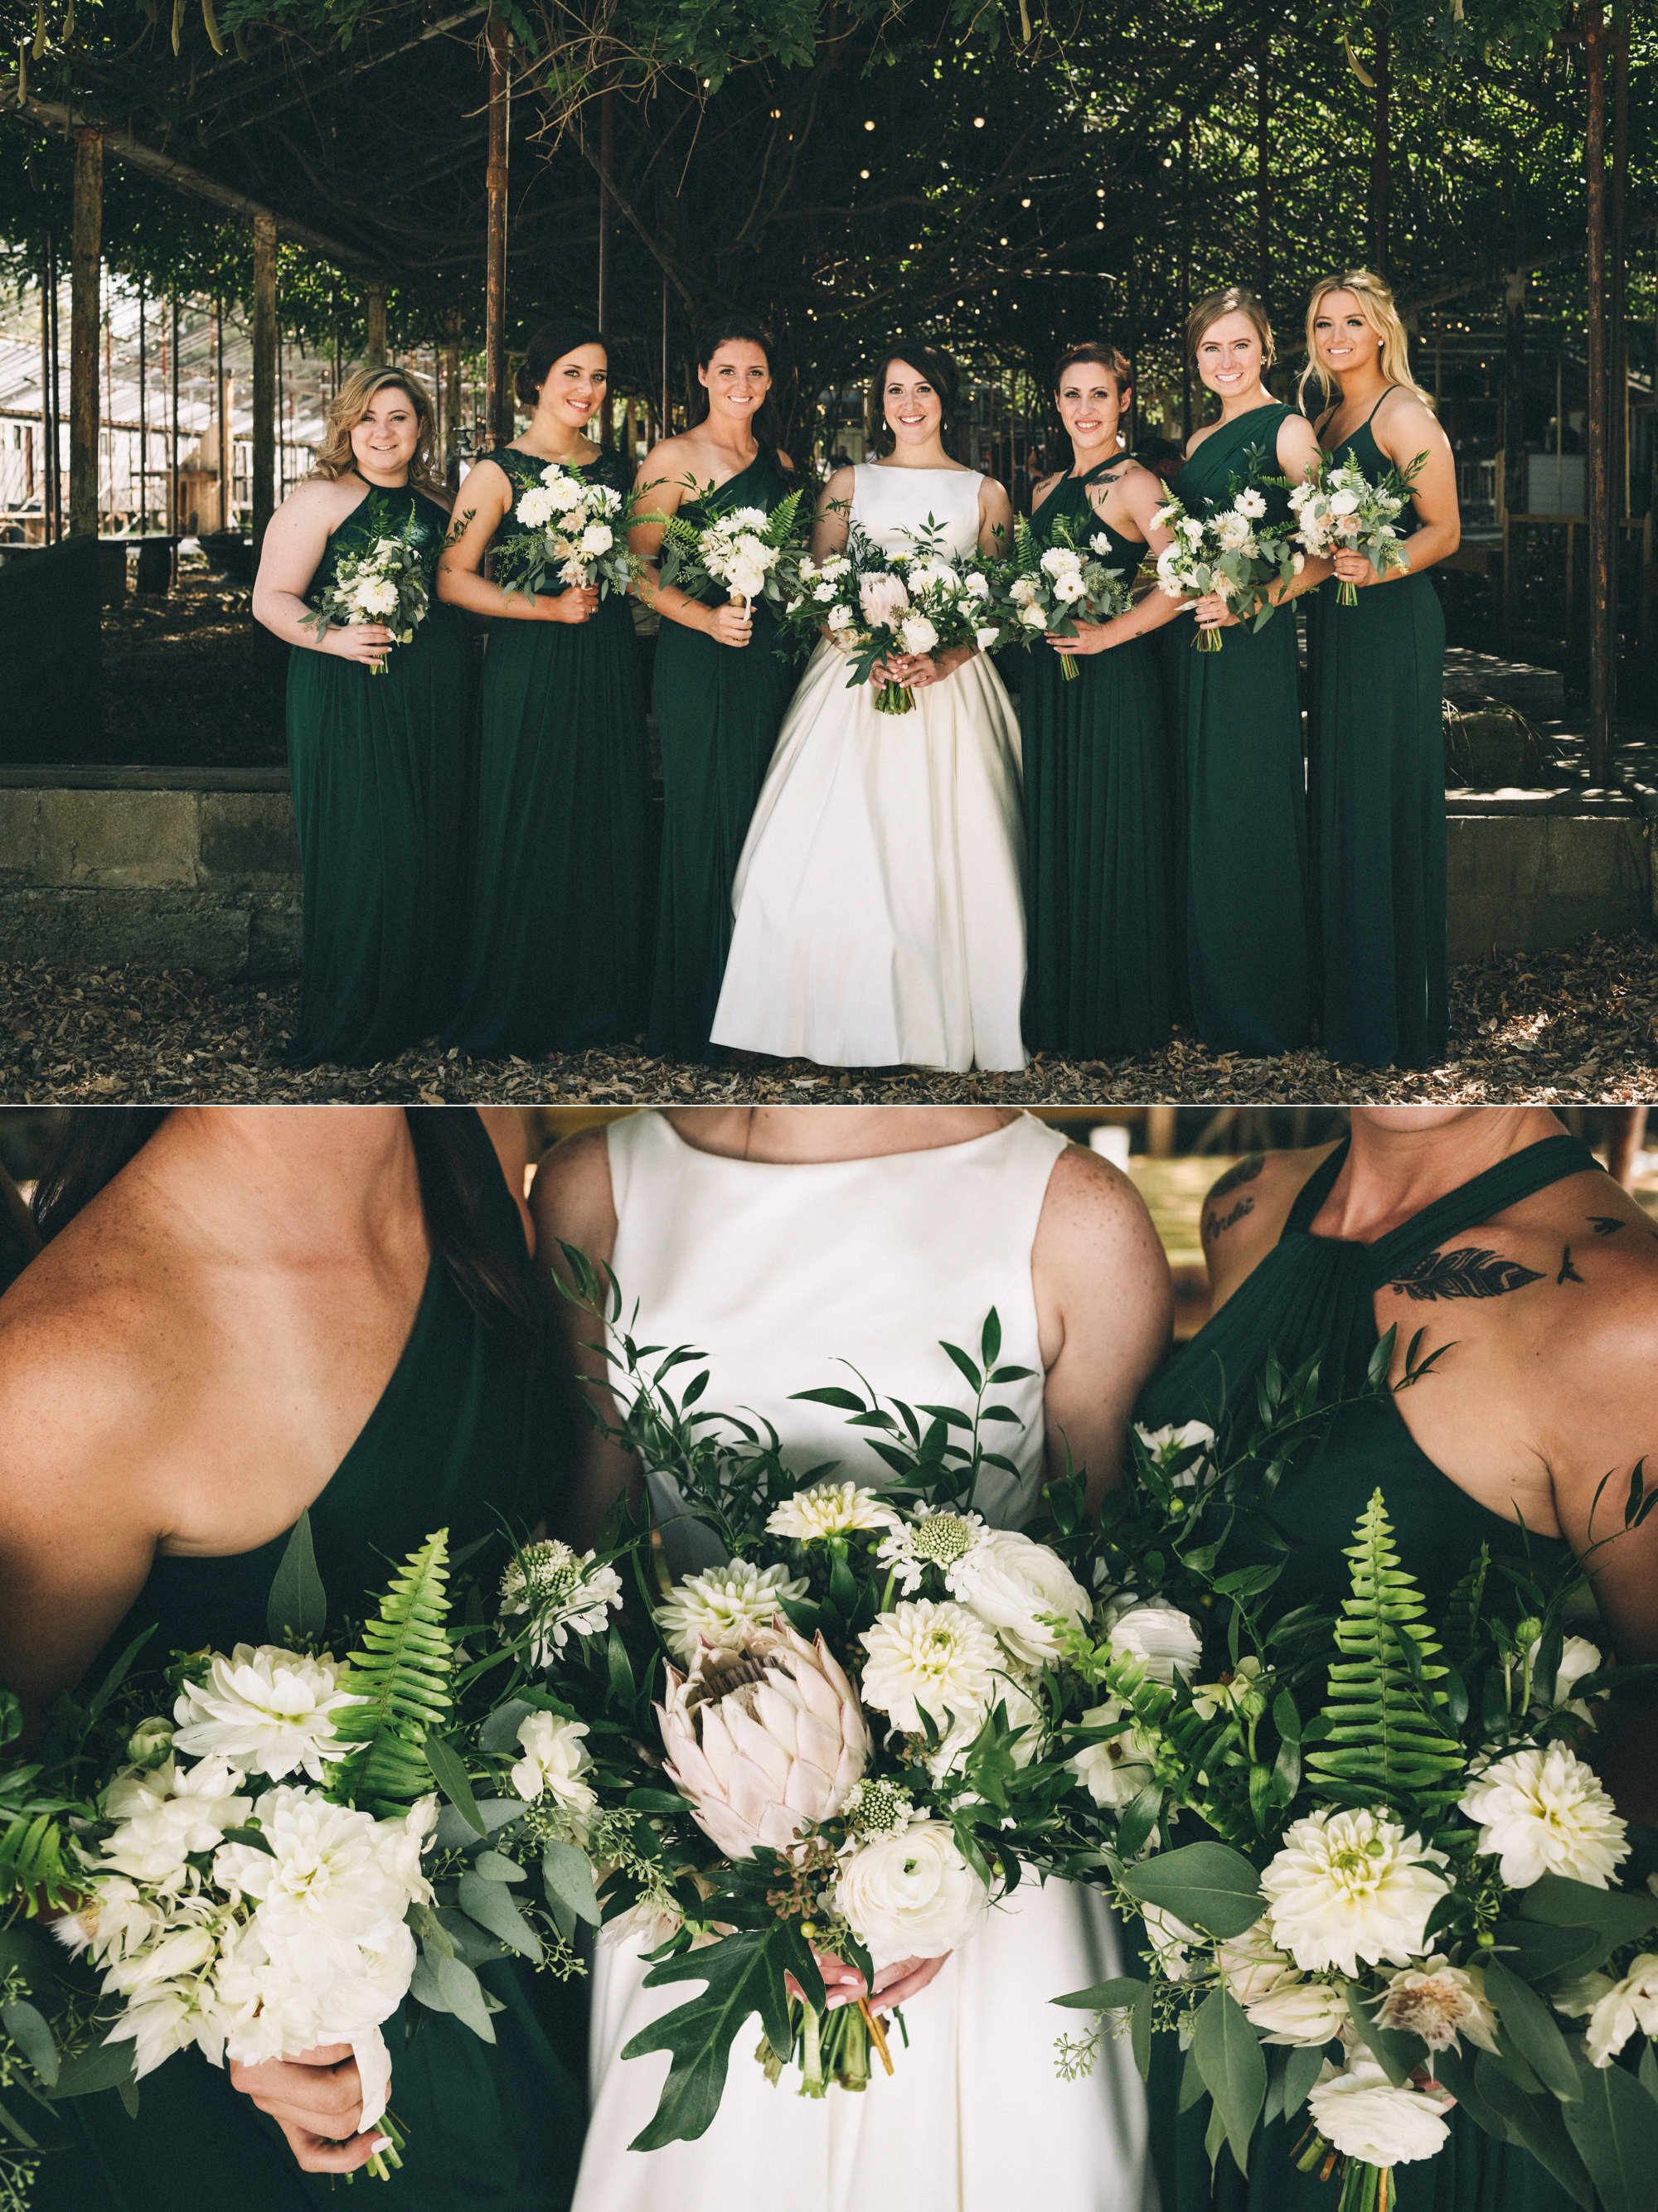 Third-Turn-Brewing-Oldham-Garden-Boho-Greenhouse-Wedding-By-Kentucky-Photographer-Sarah-Katherine-Davis-Photography00003.JPG